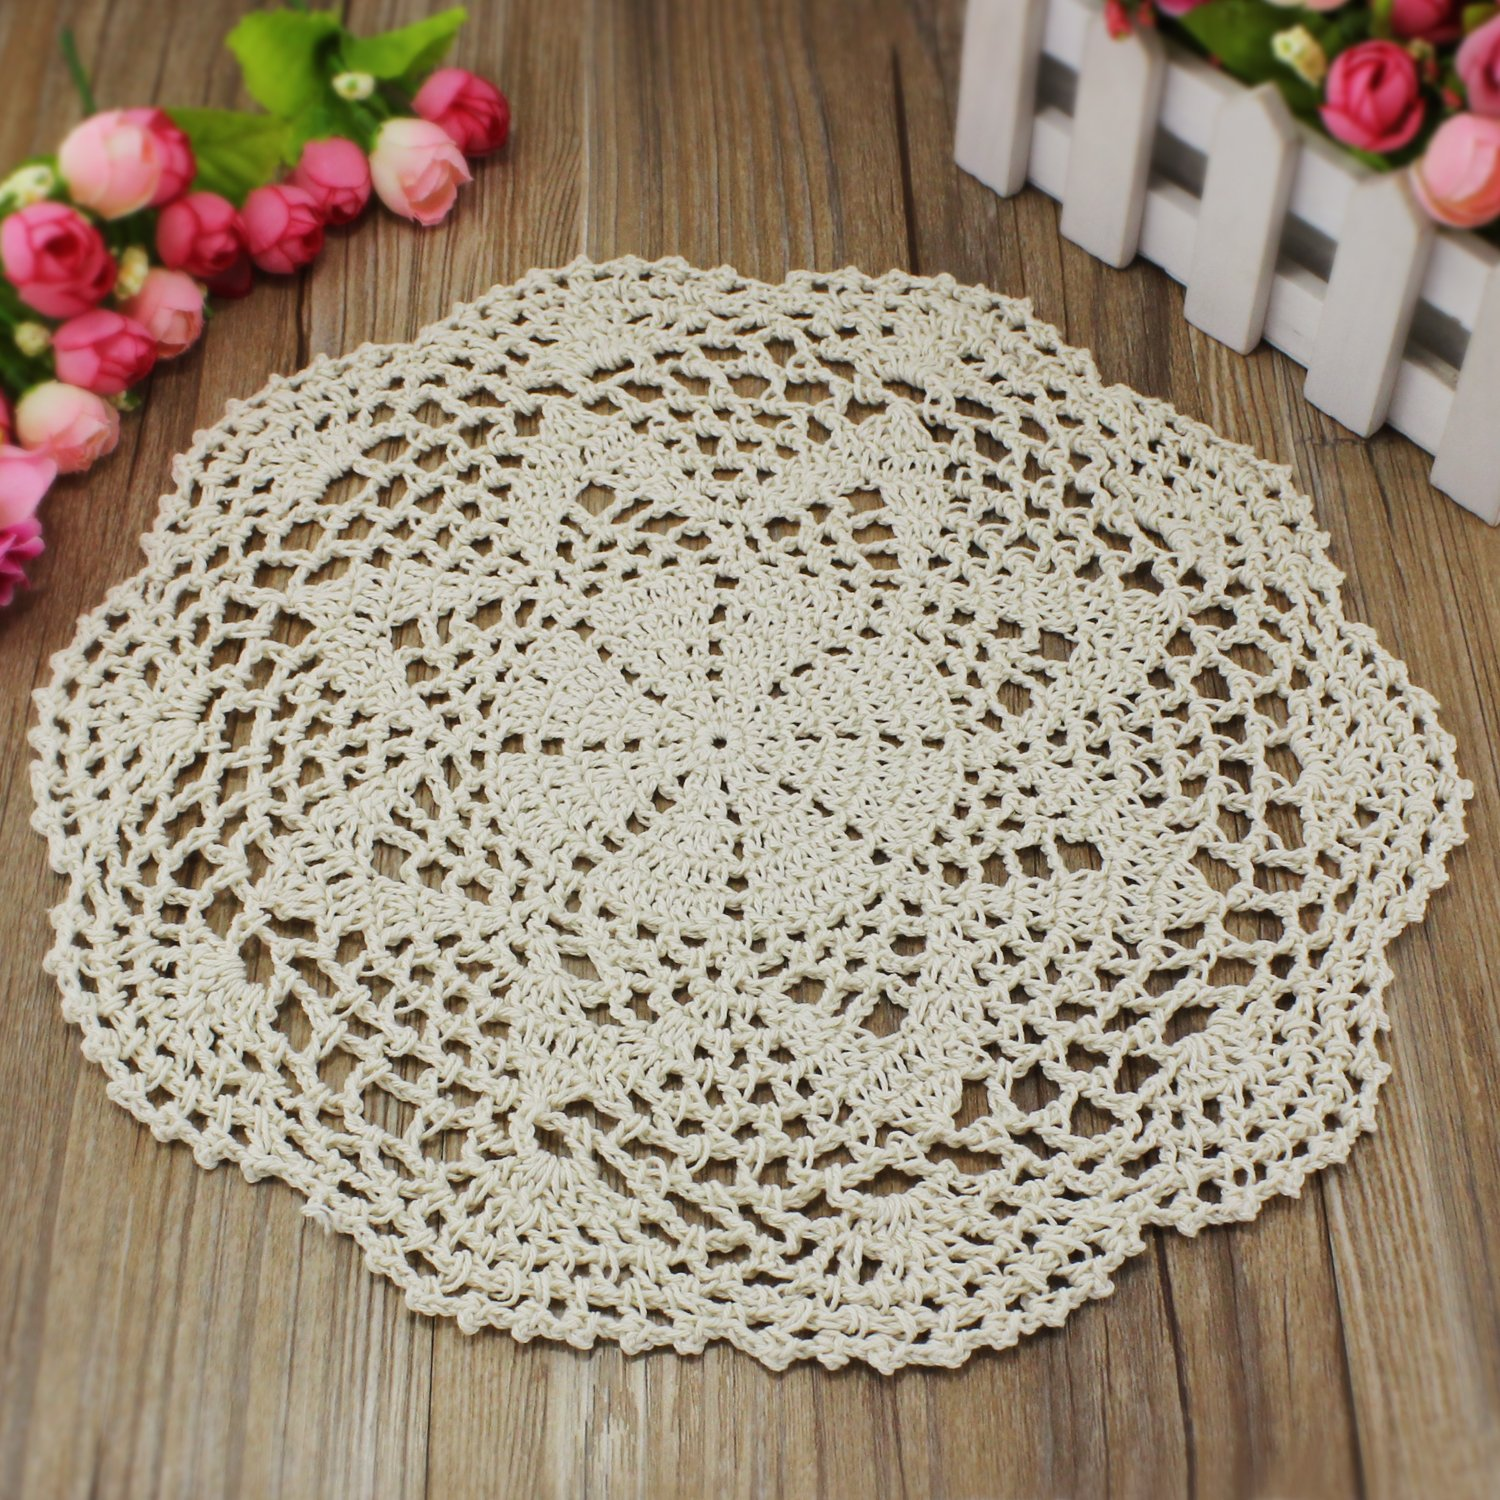 PsmGoods Handmade Cotton Lace Table Placemats Round Crochet Flower ...